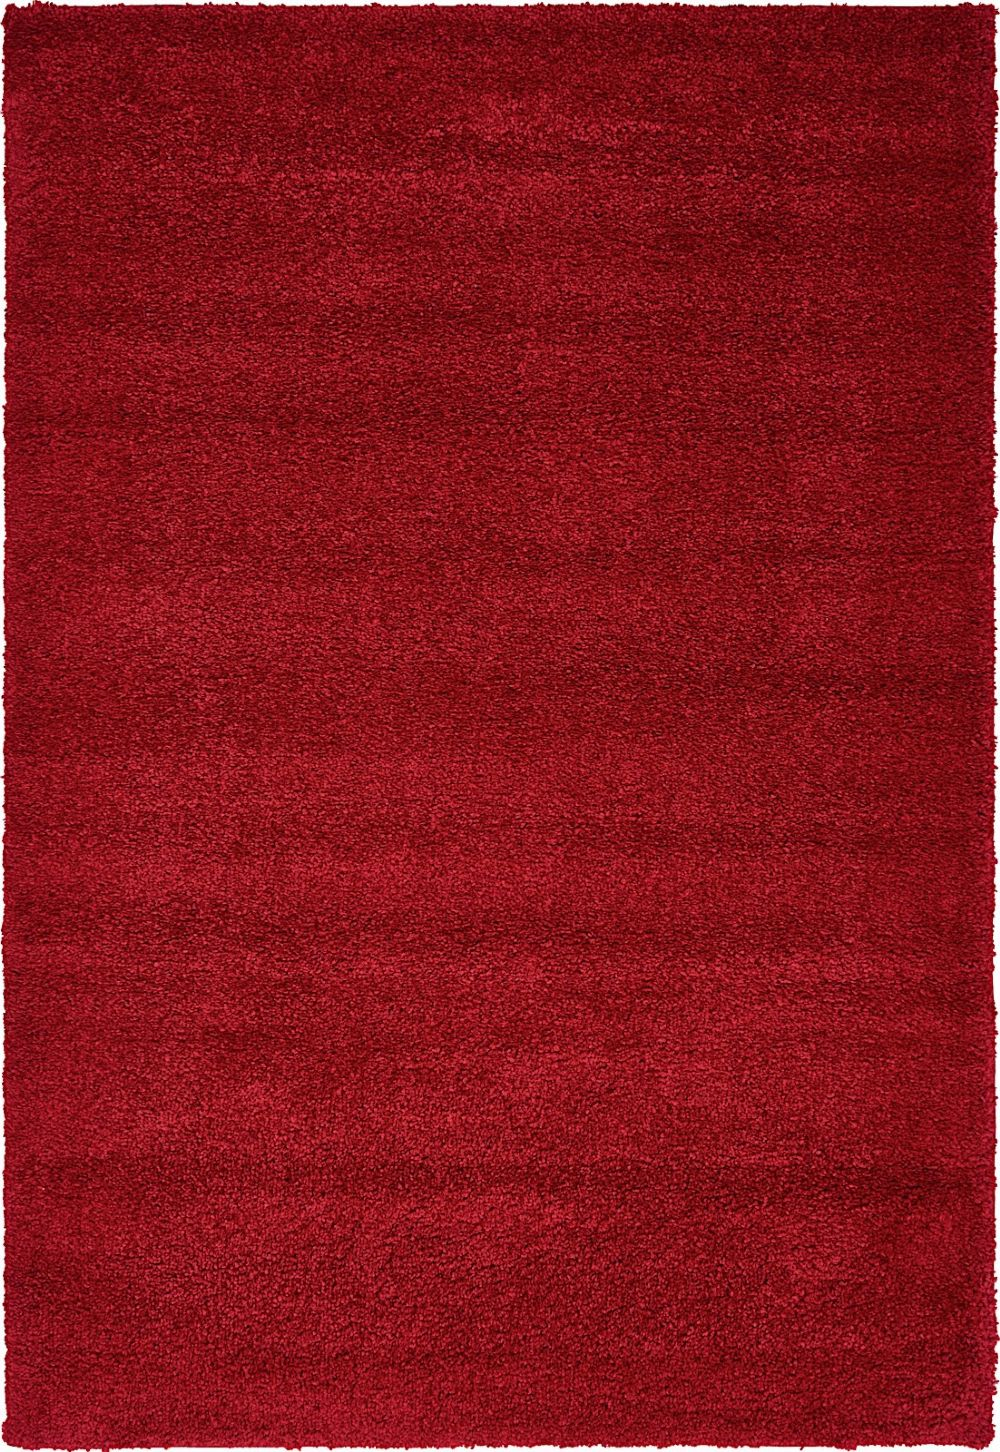 rugpal carrie solid/striped area rug collection